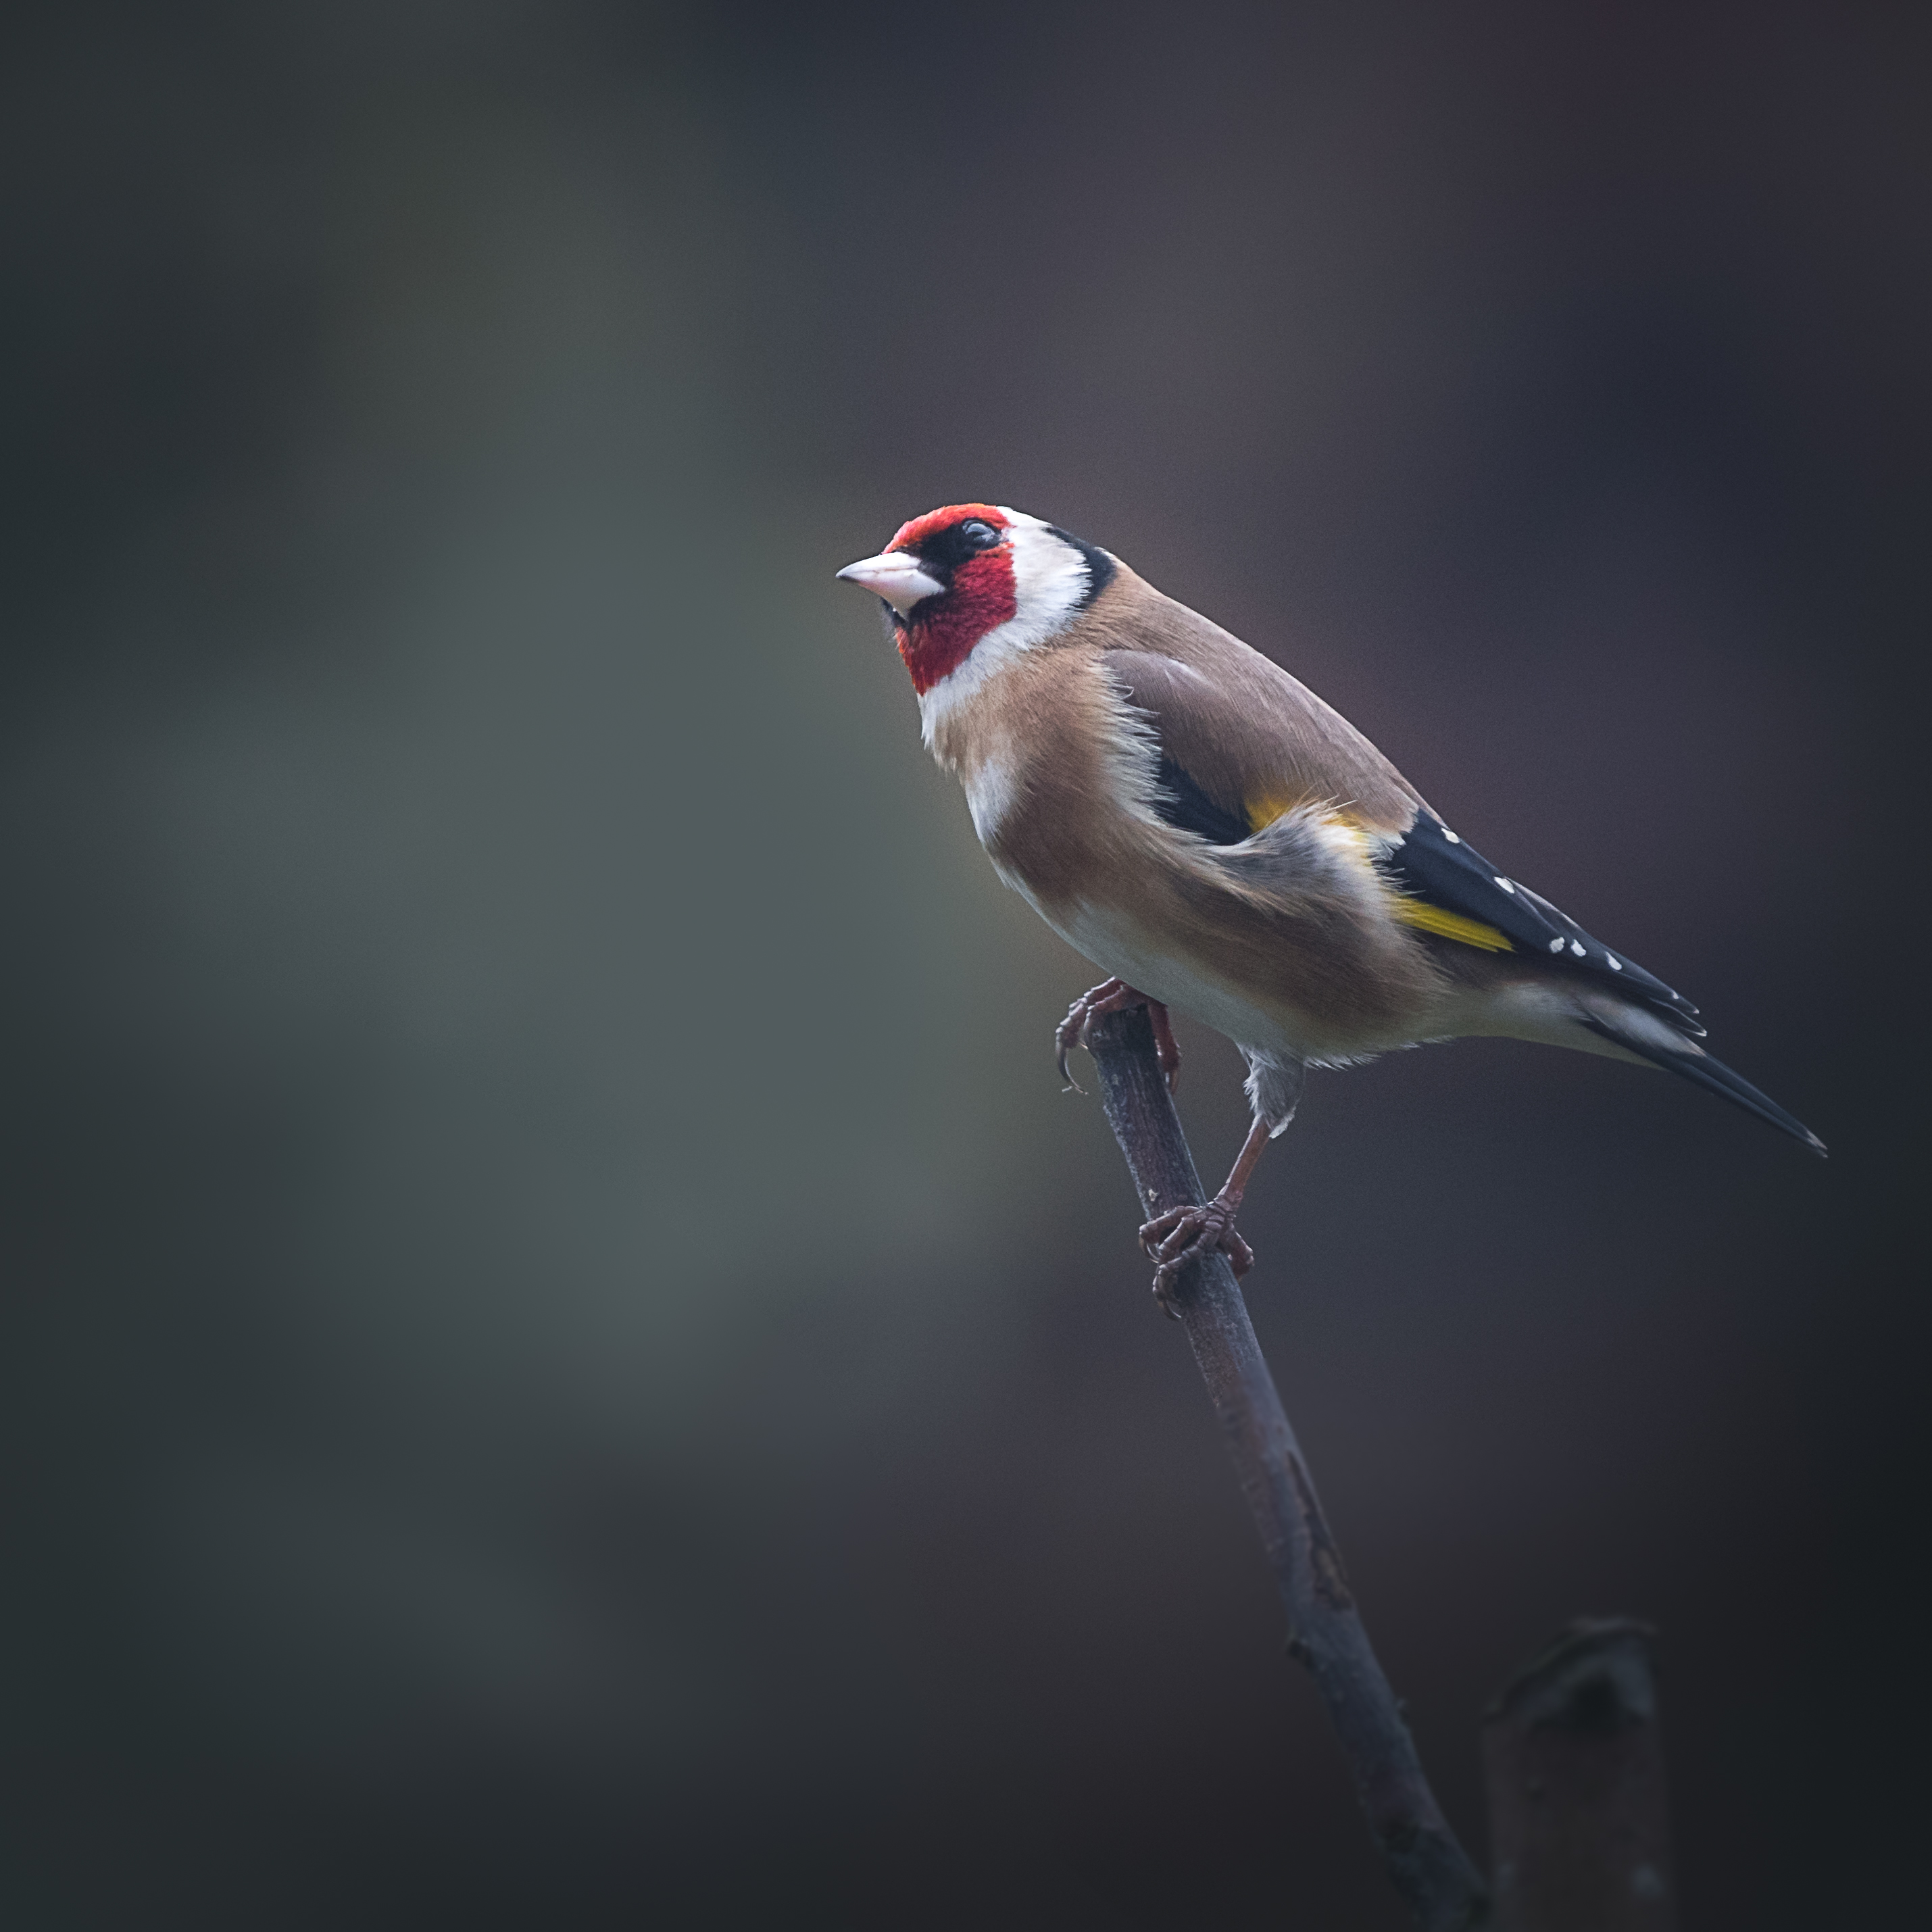 My mate Goldfinch